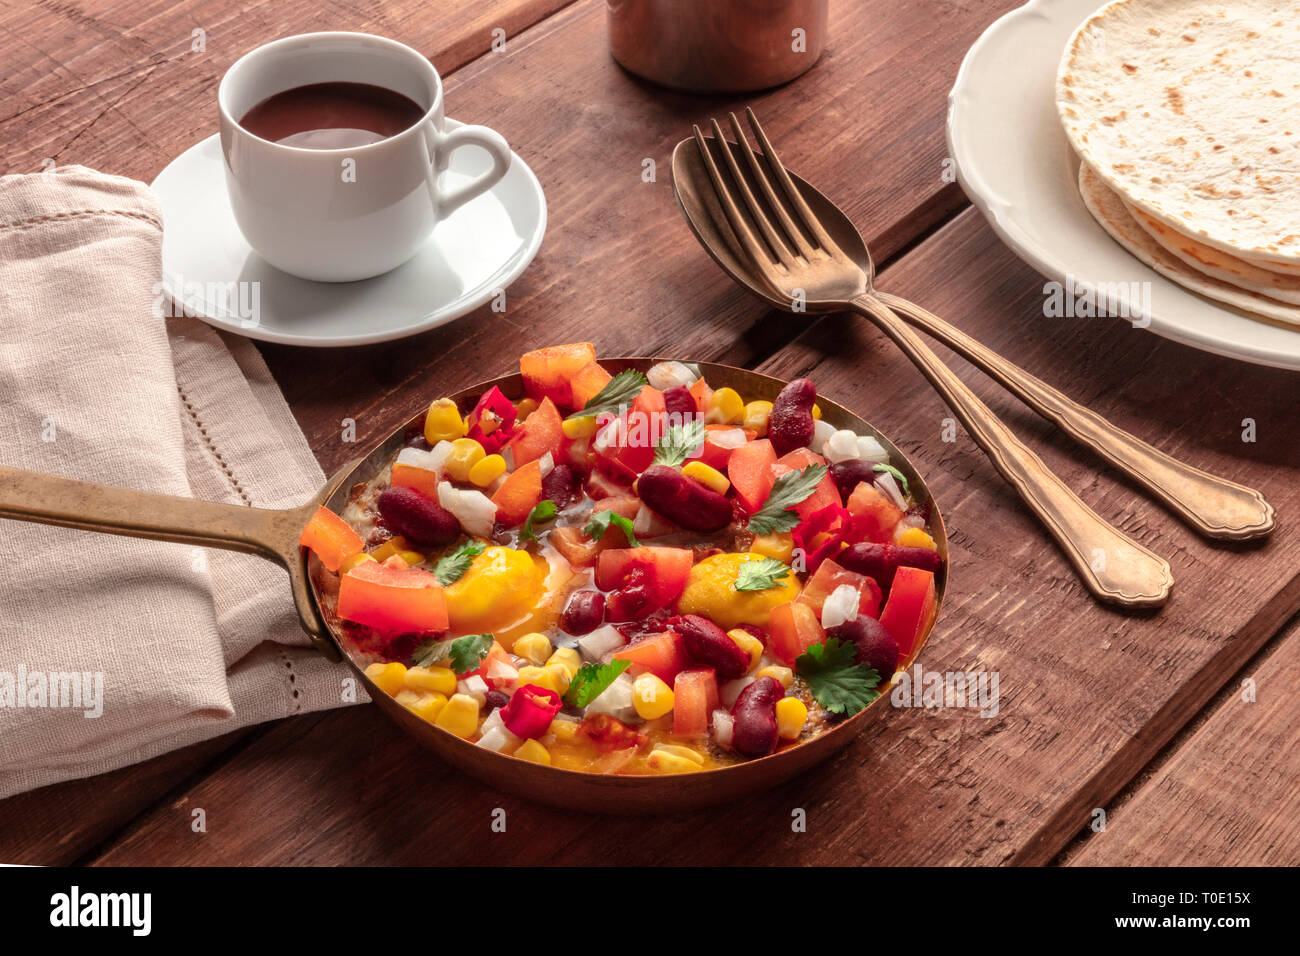 Mexican breakfast food. Huevos rancheros, the fried eggs, with the pico de gallo salad, hot chocolate, and tortillas - Stock Image